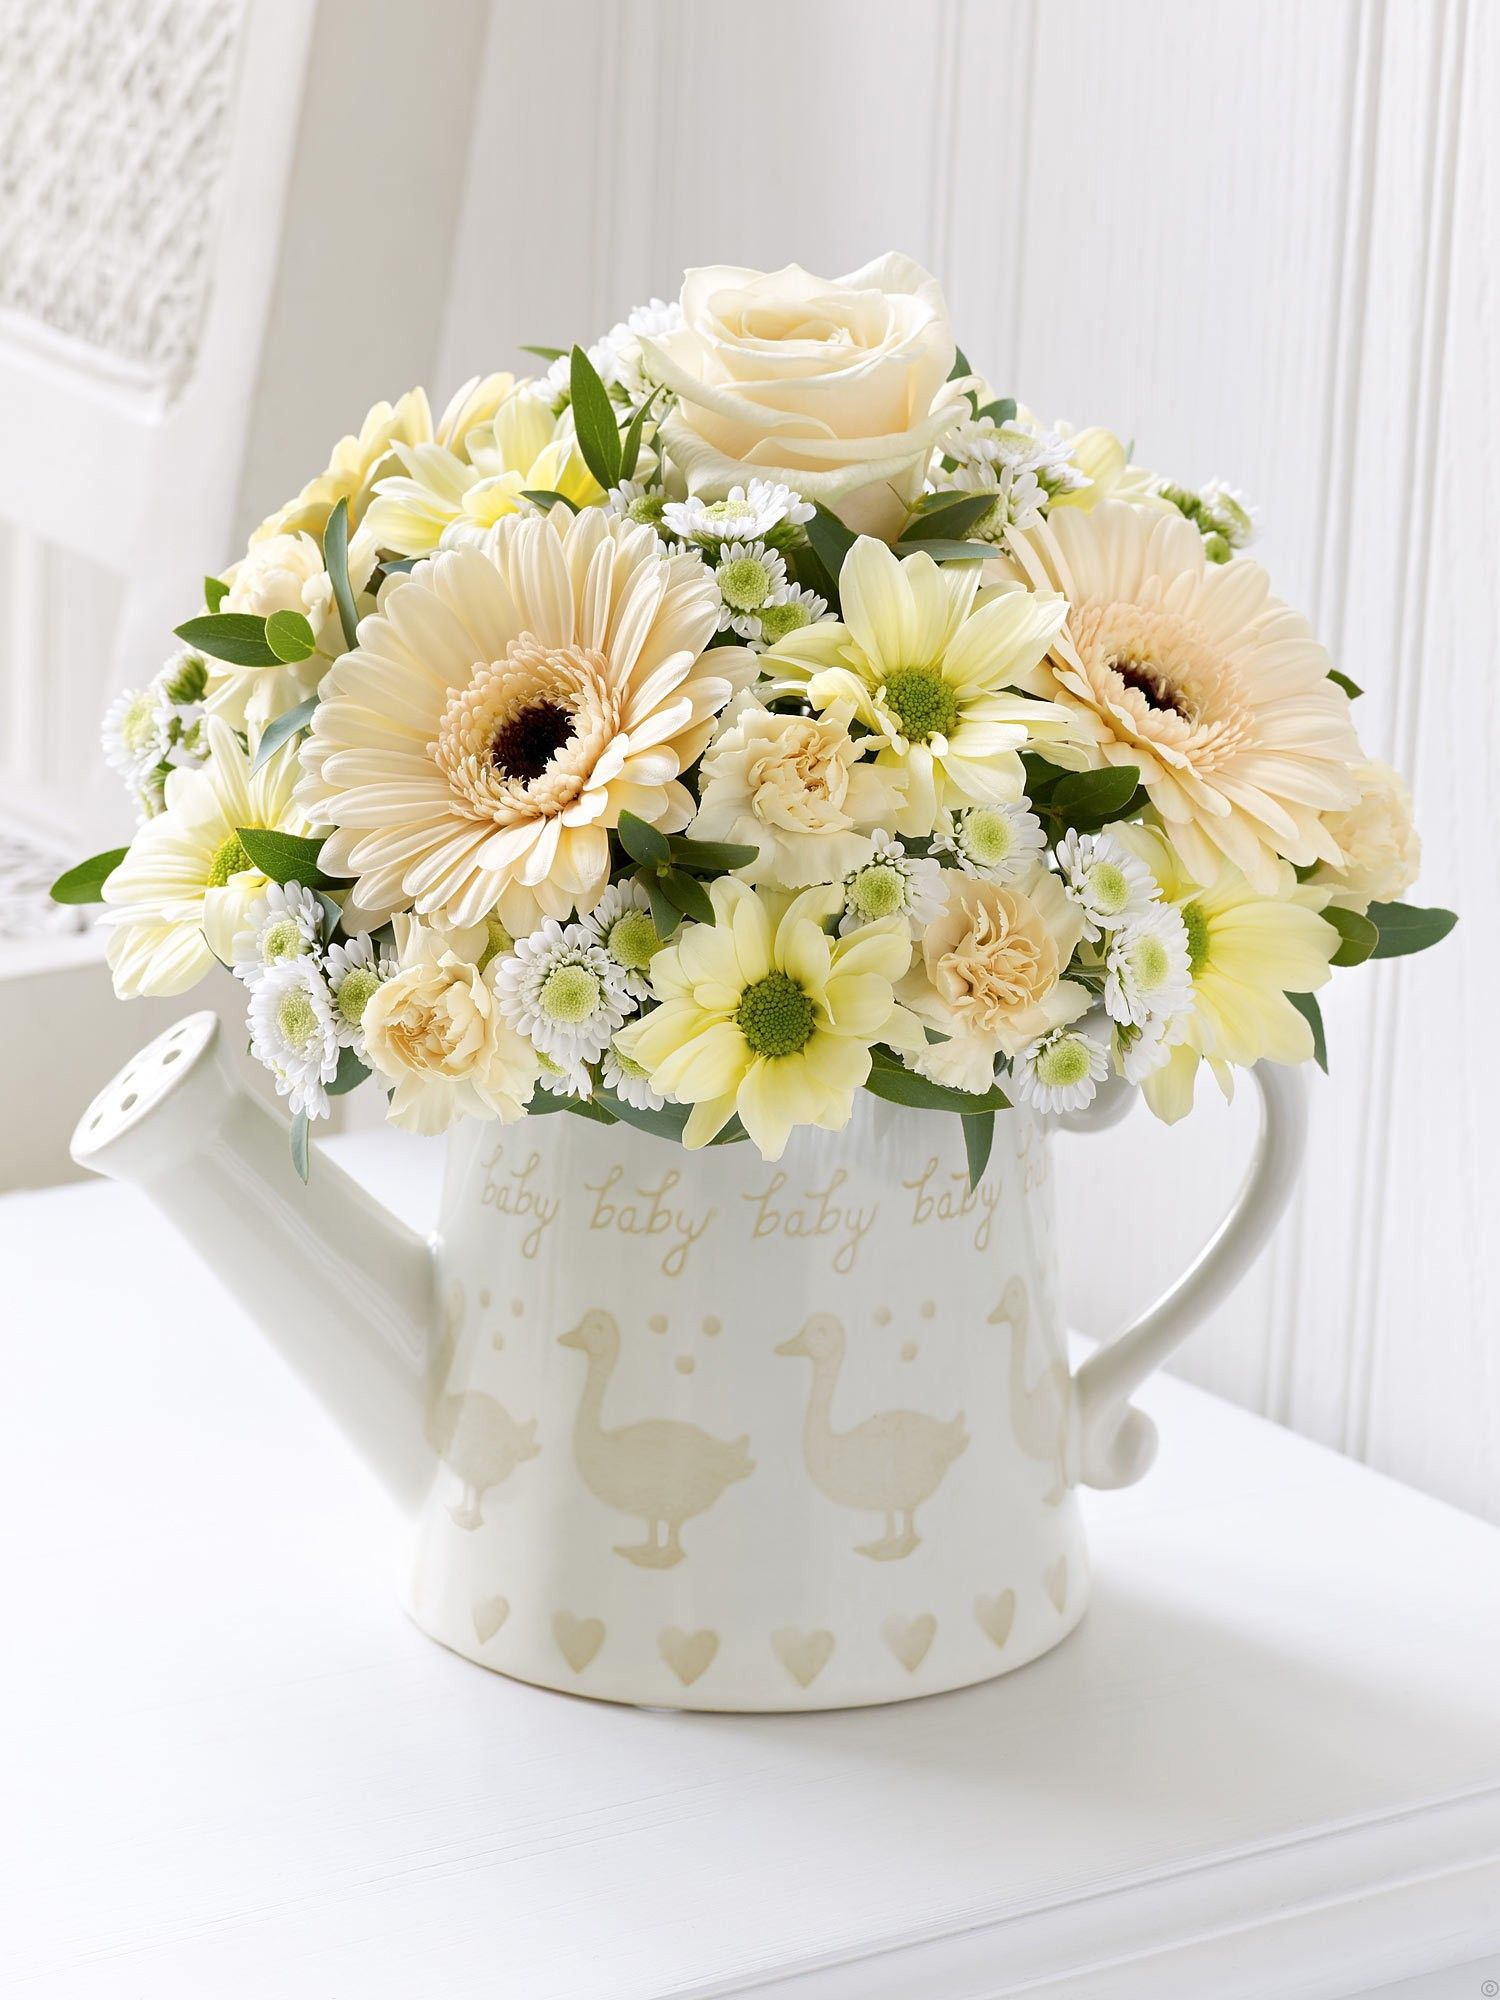 Perfect Flowers For A New Baby Or Boy In Cute Duck Motif Watering Can